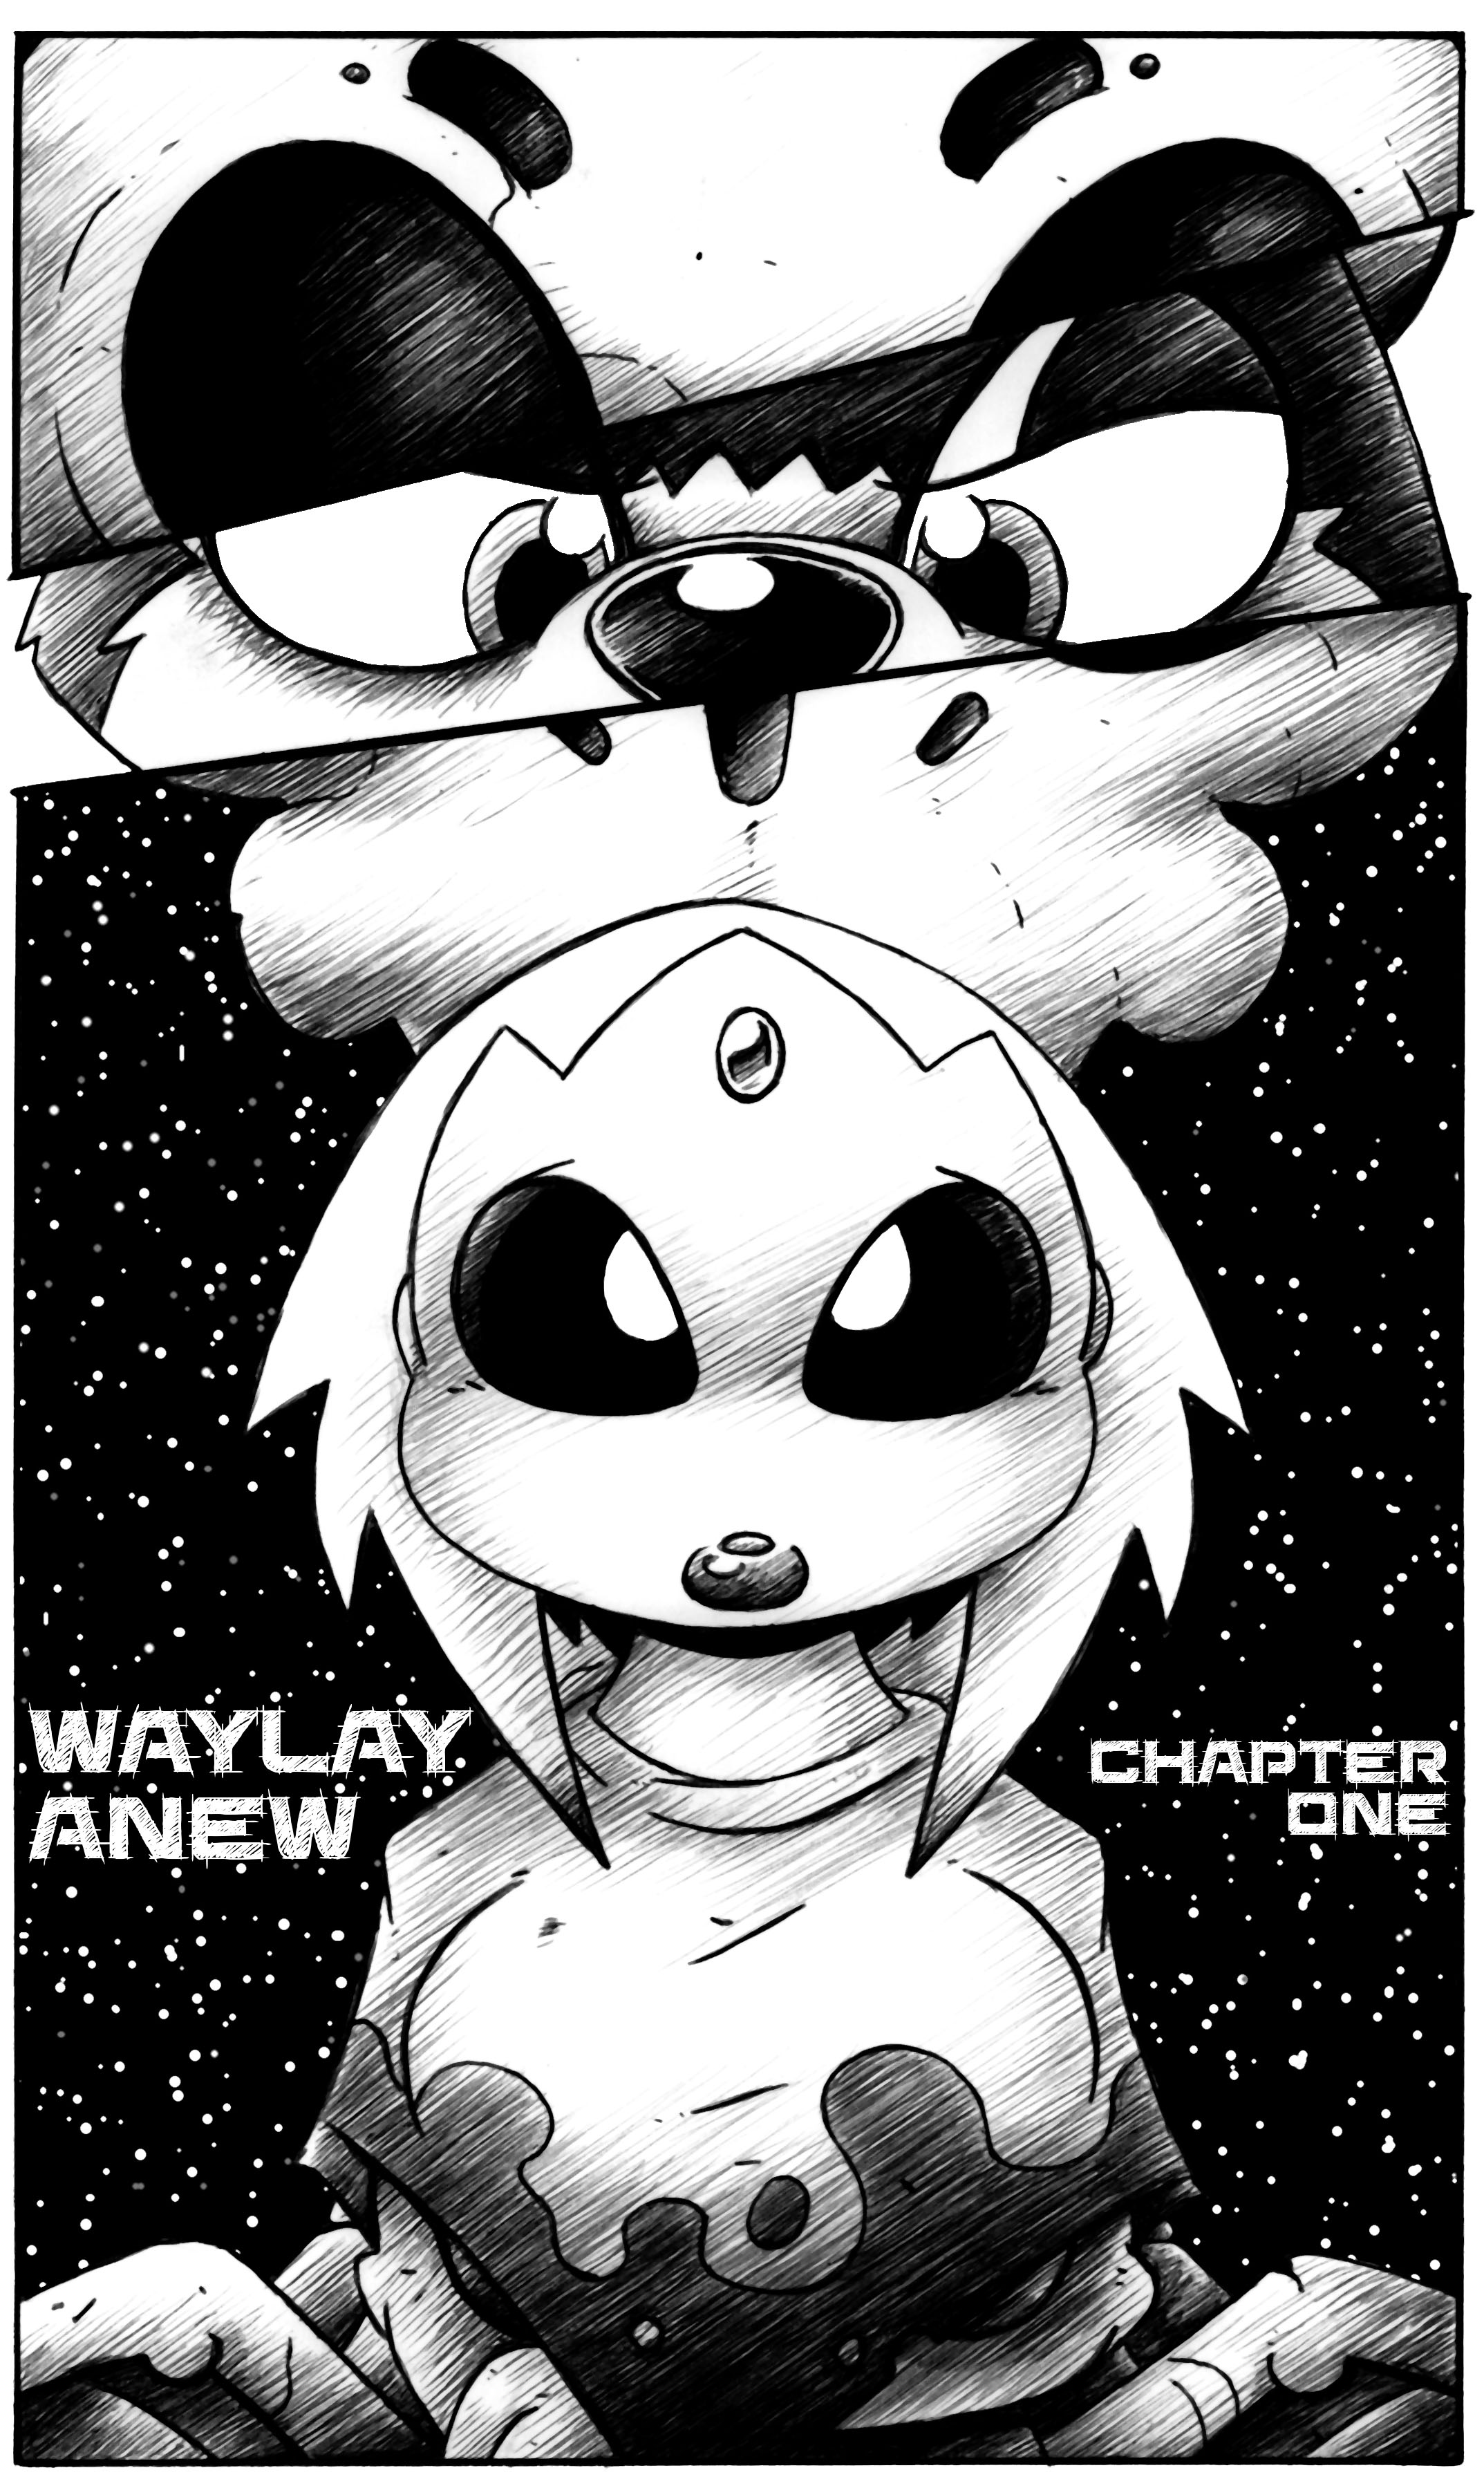 Waylay Anew: Chapter One, Cover